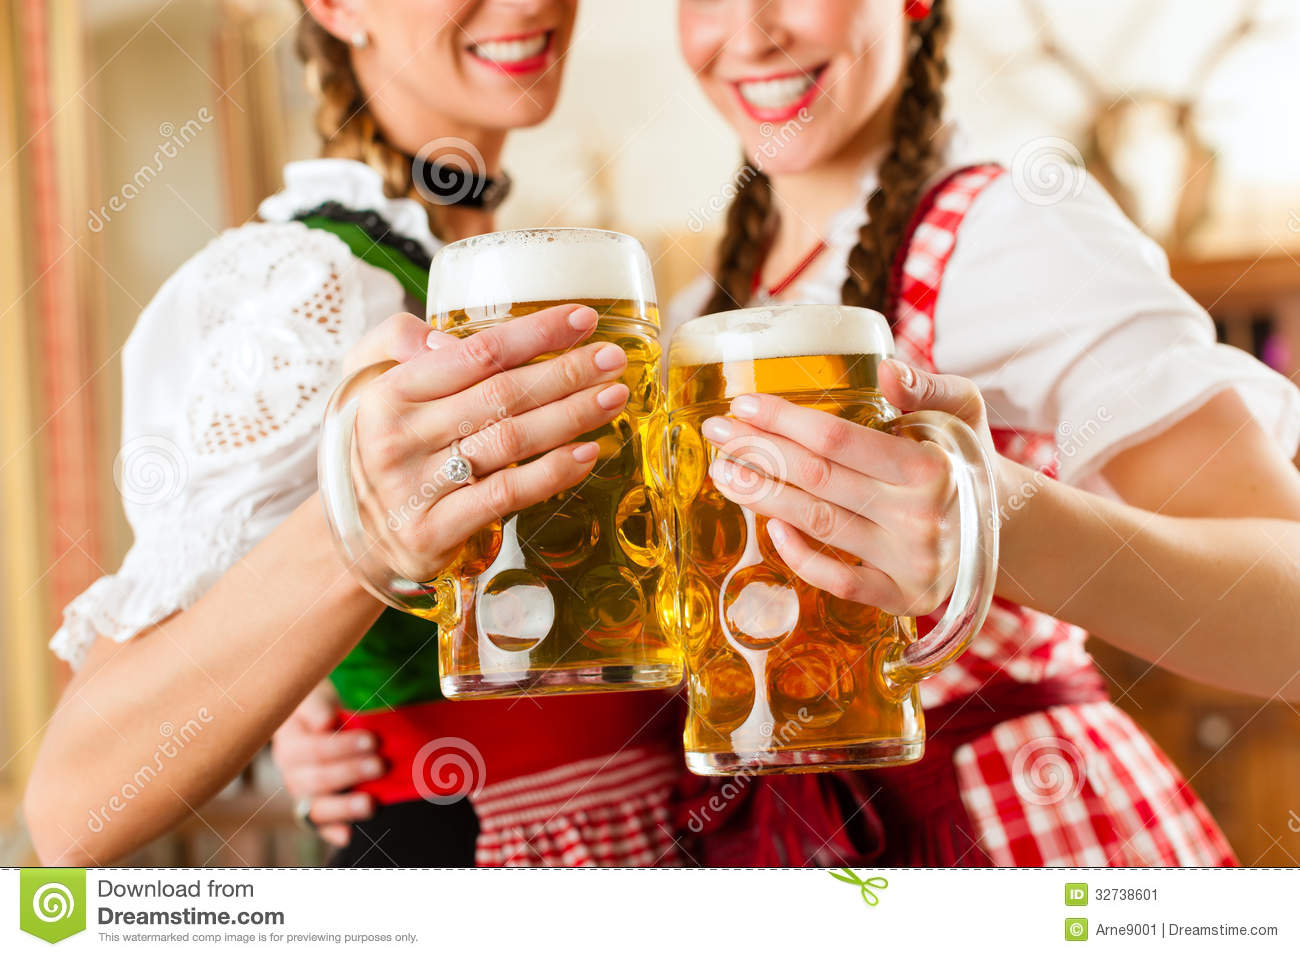 Two young women in traditional Bavarian Tracht in restaurant or pub